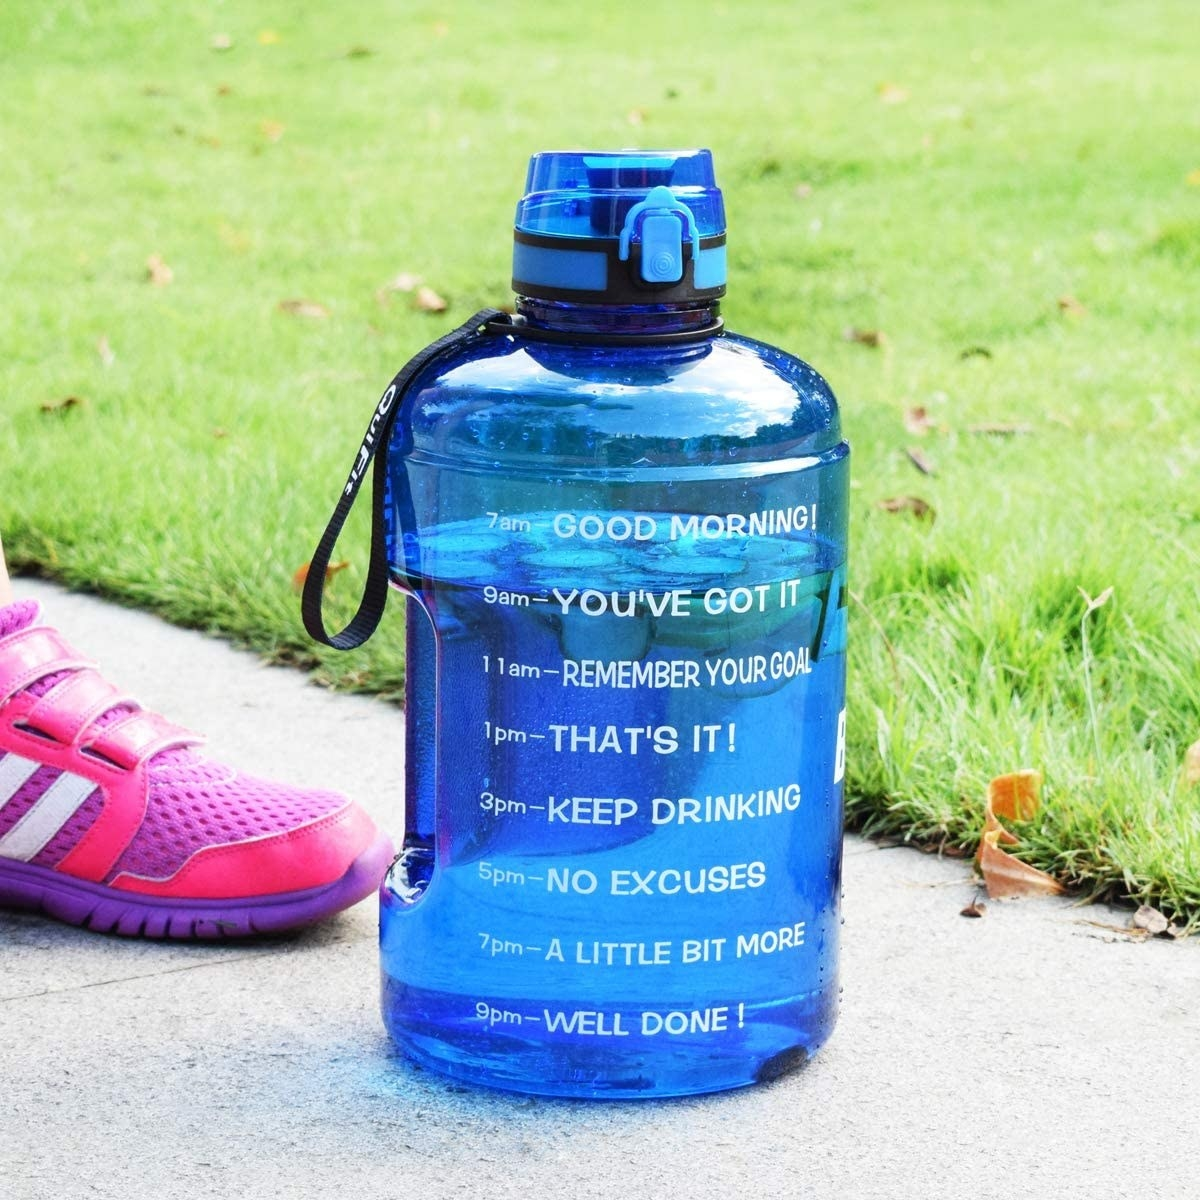 A time-marked waterbottle on the pavement beside a lawn and someone's foot